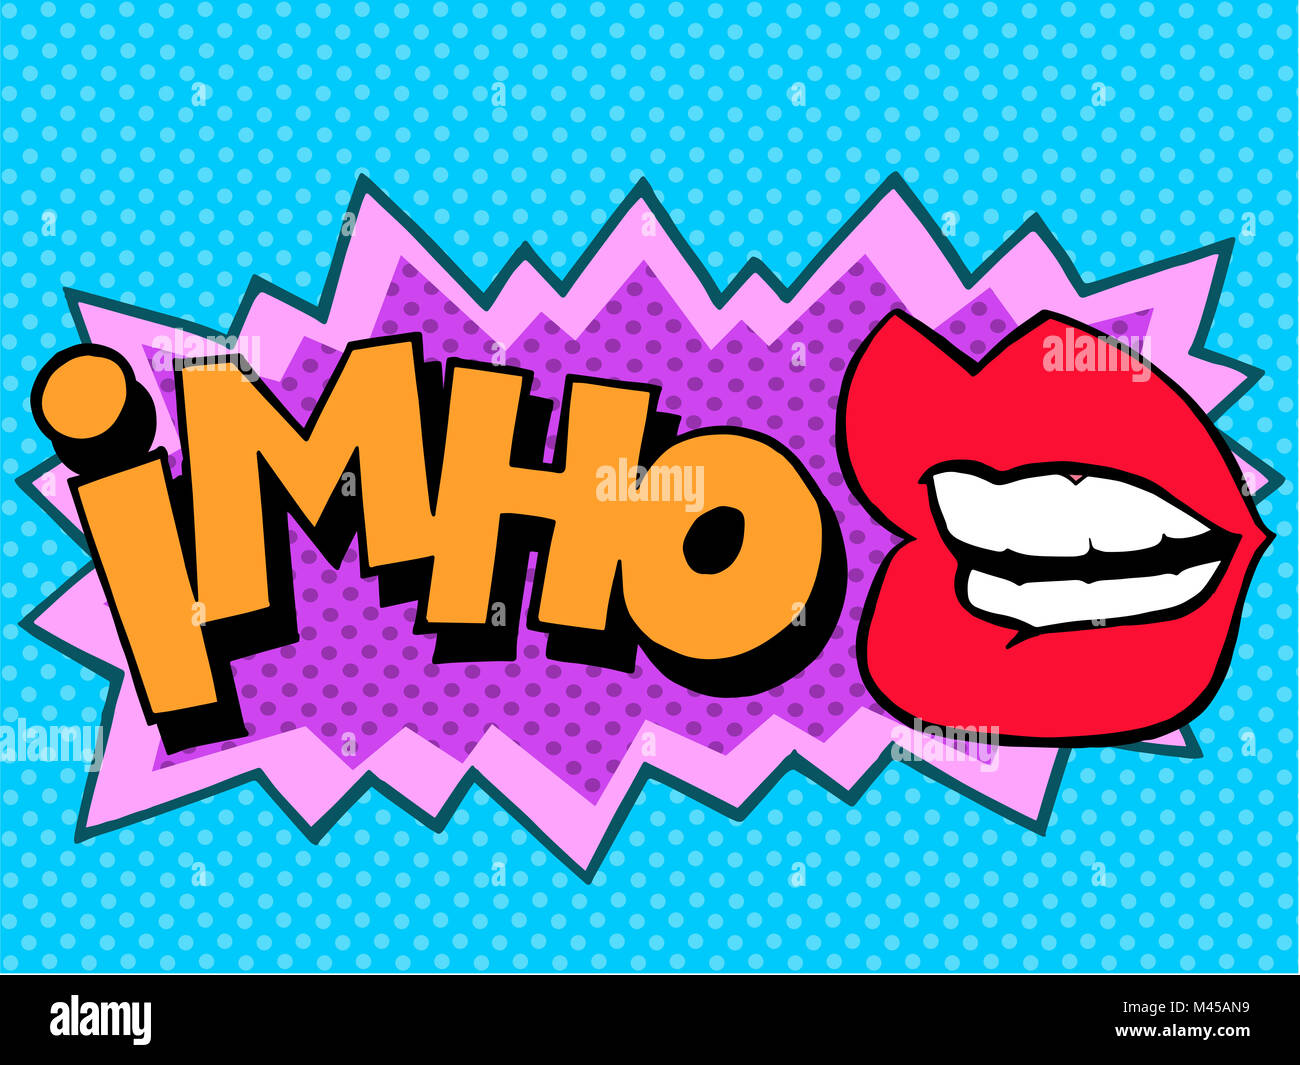 IMHO comic book style lettering - Stock Image